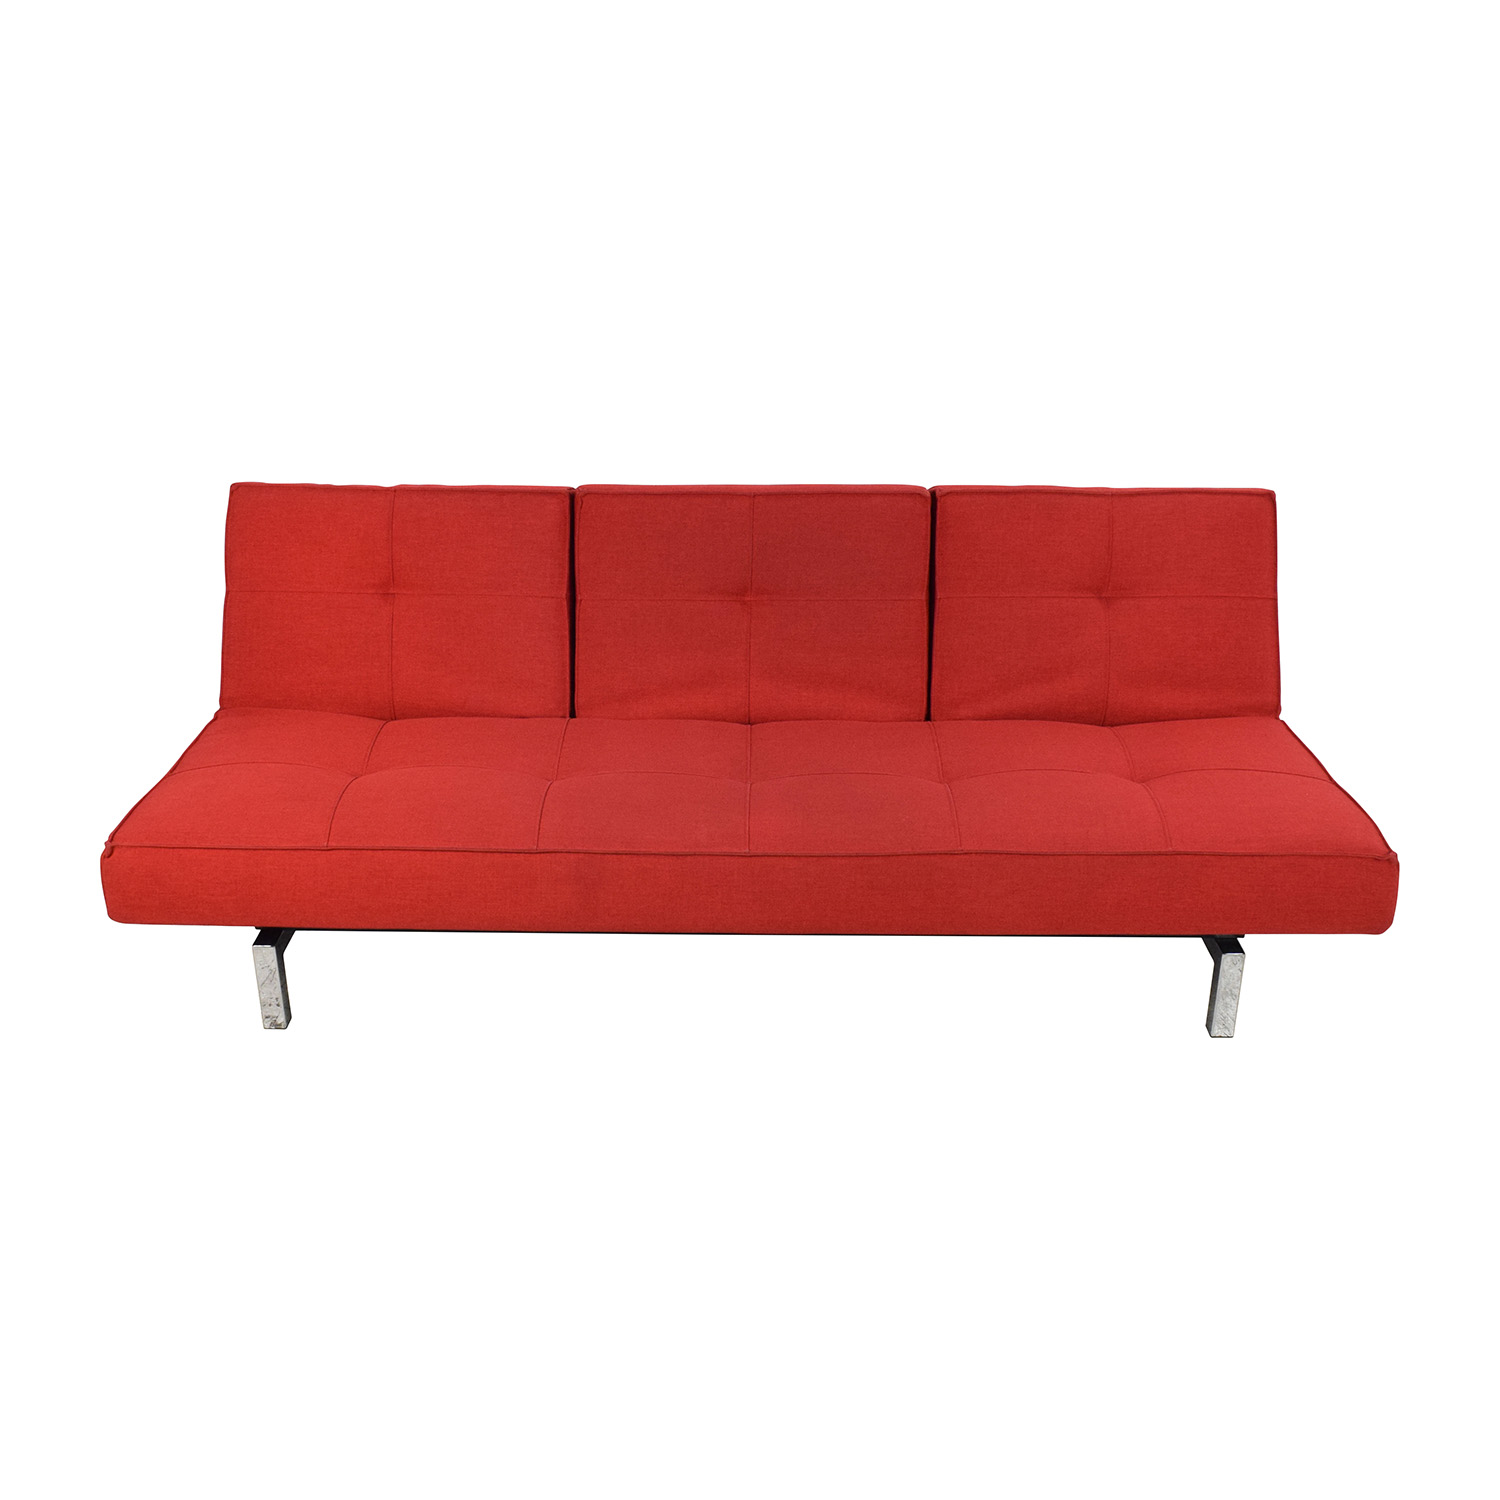 Room and Board Room & Board Eden Convertible Red Sofa Red